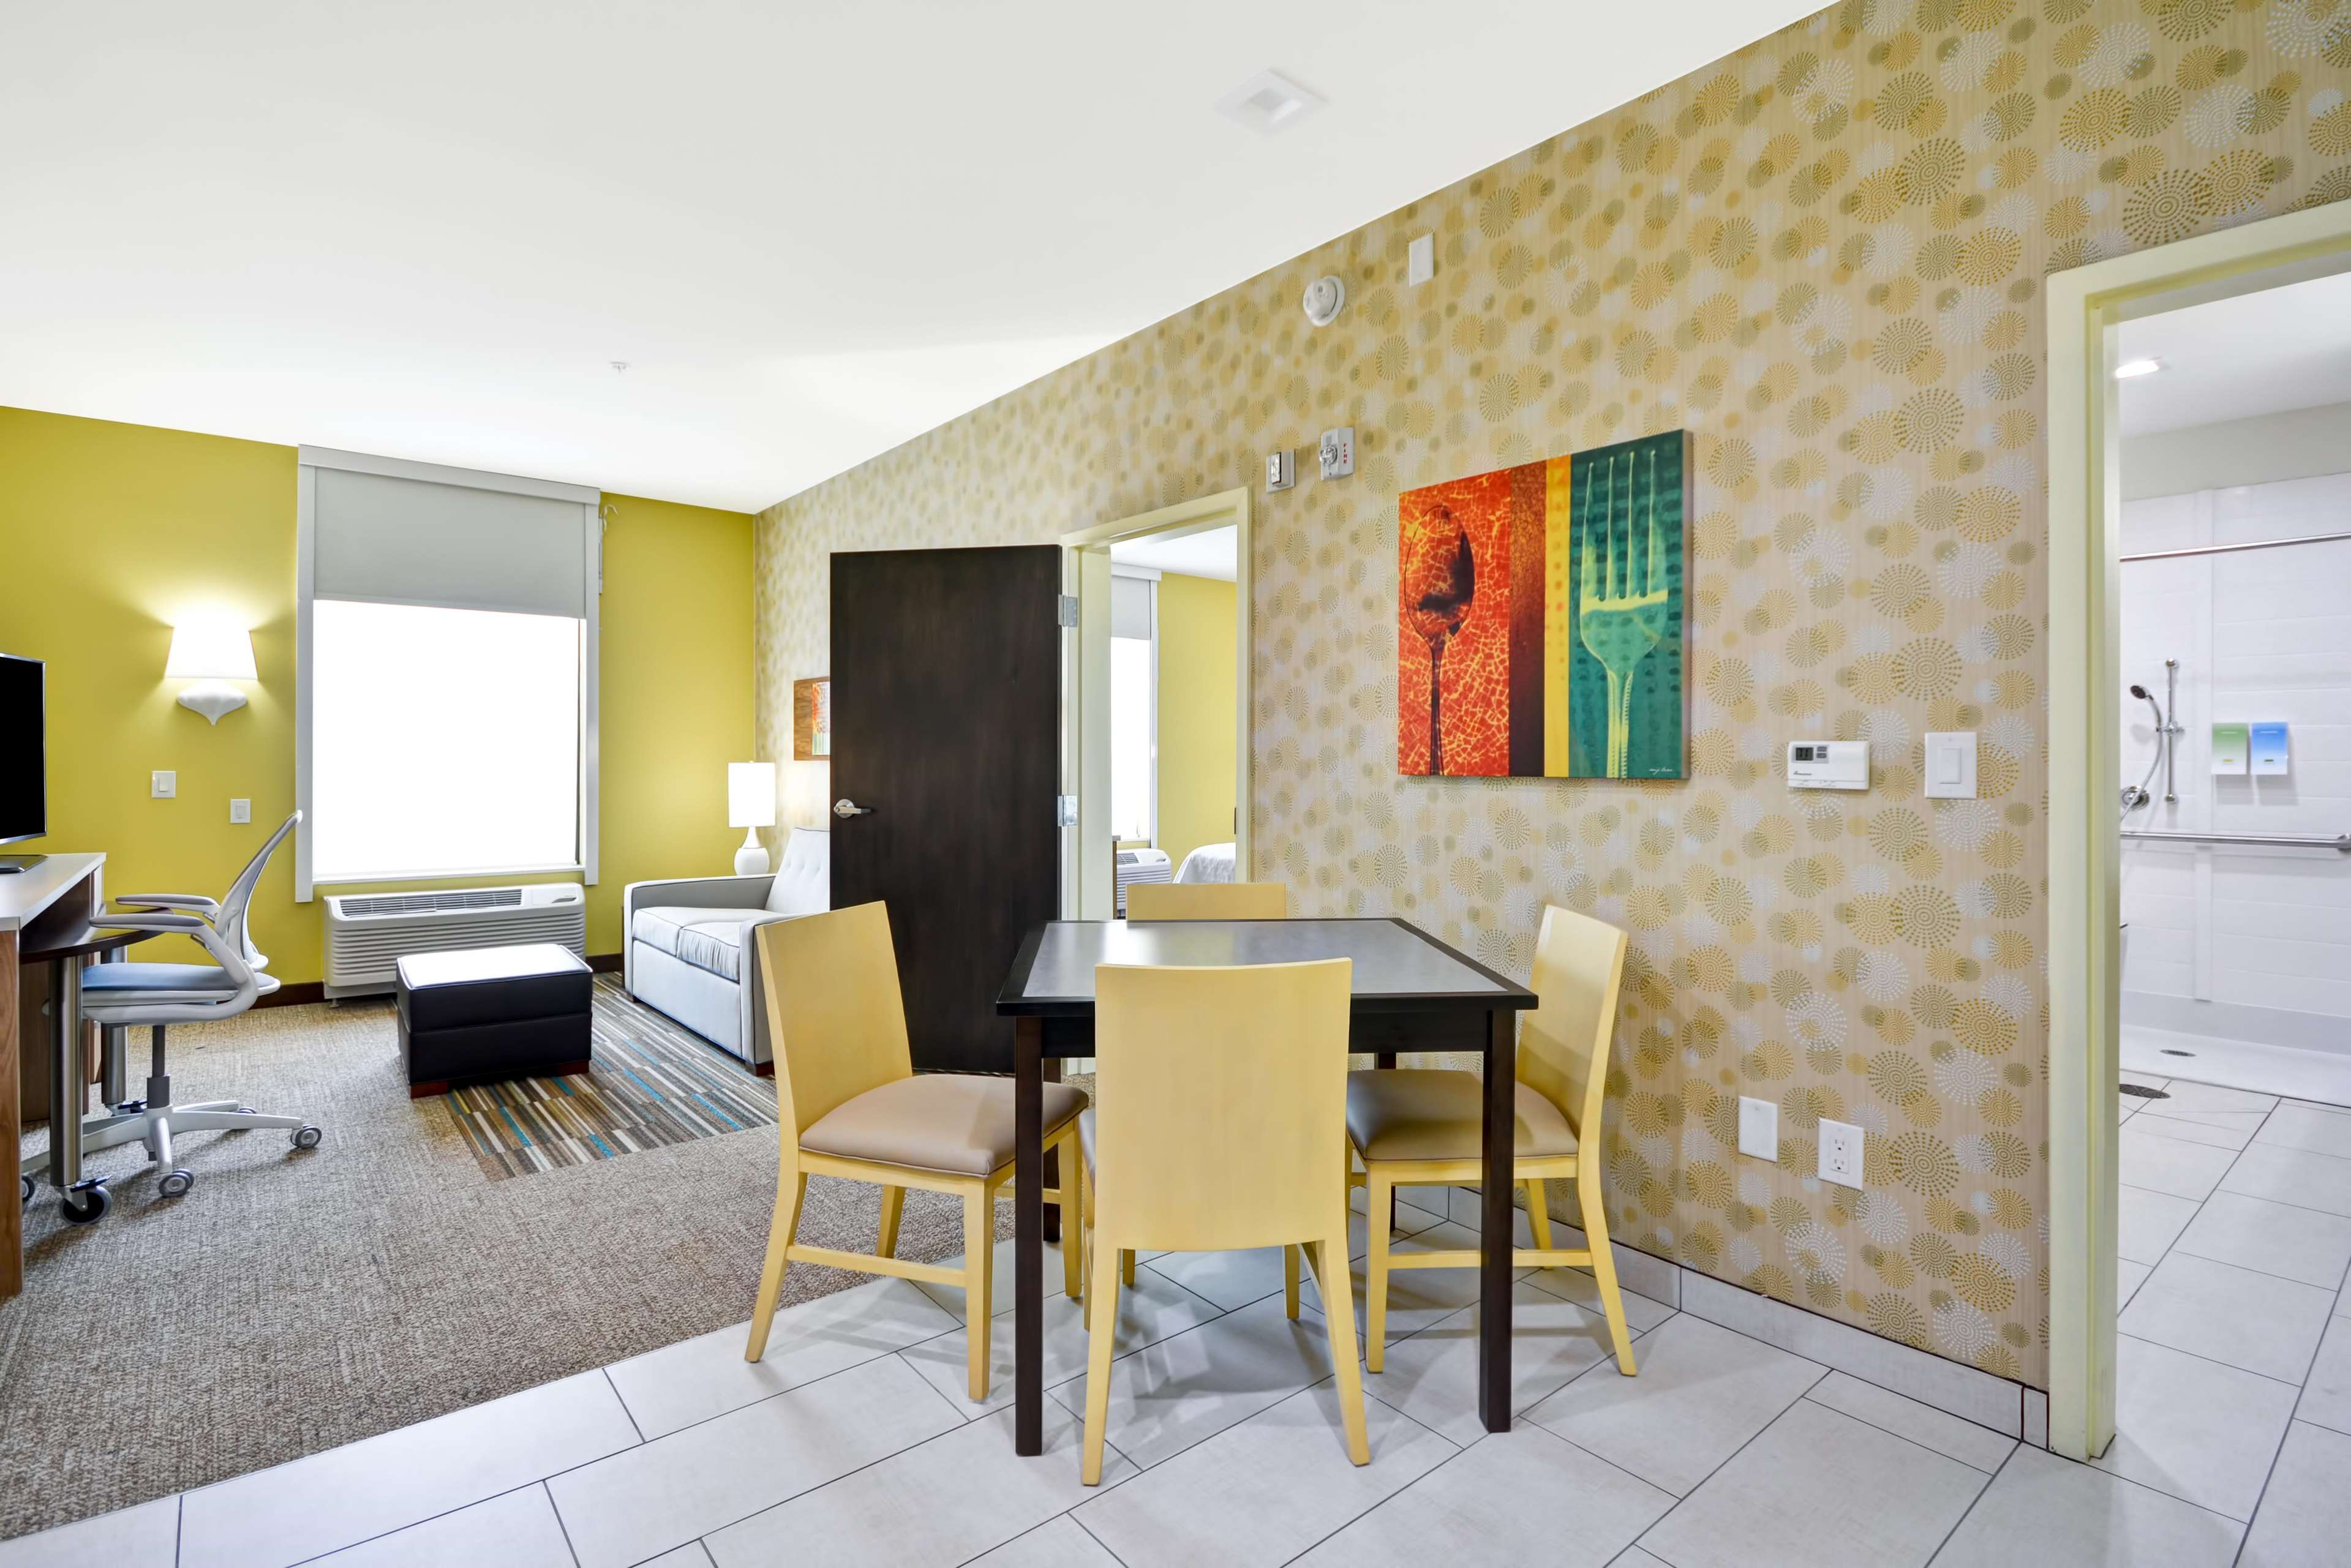 Home2 Suites by Hilton Fort Worth Southwest Cityview image 25